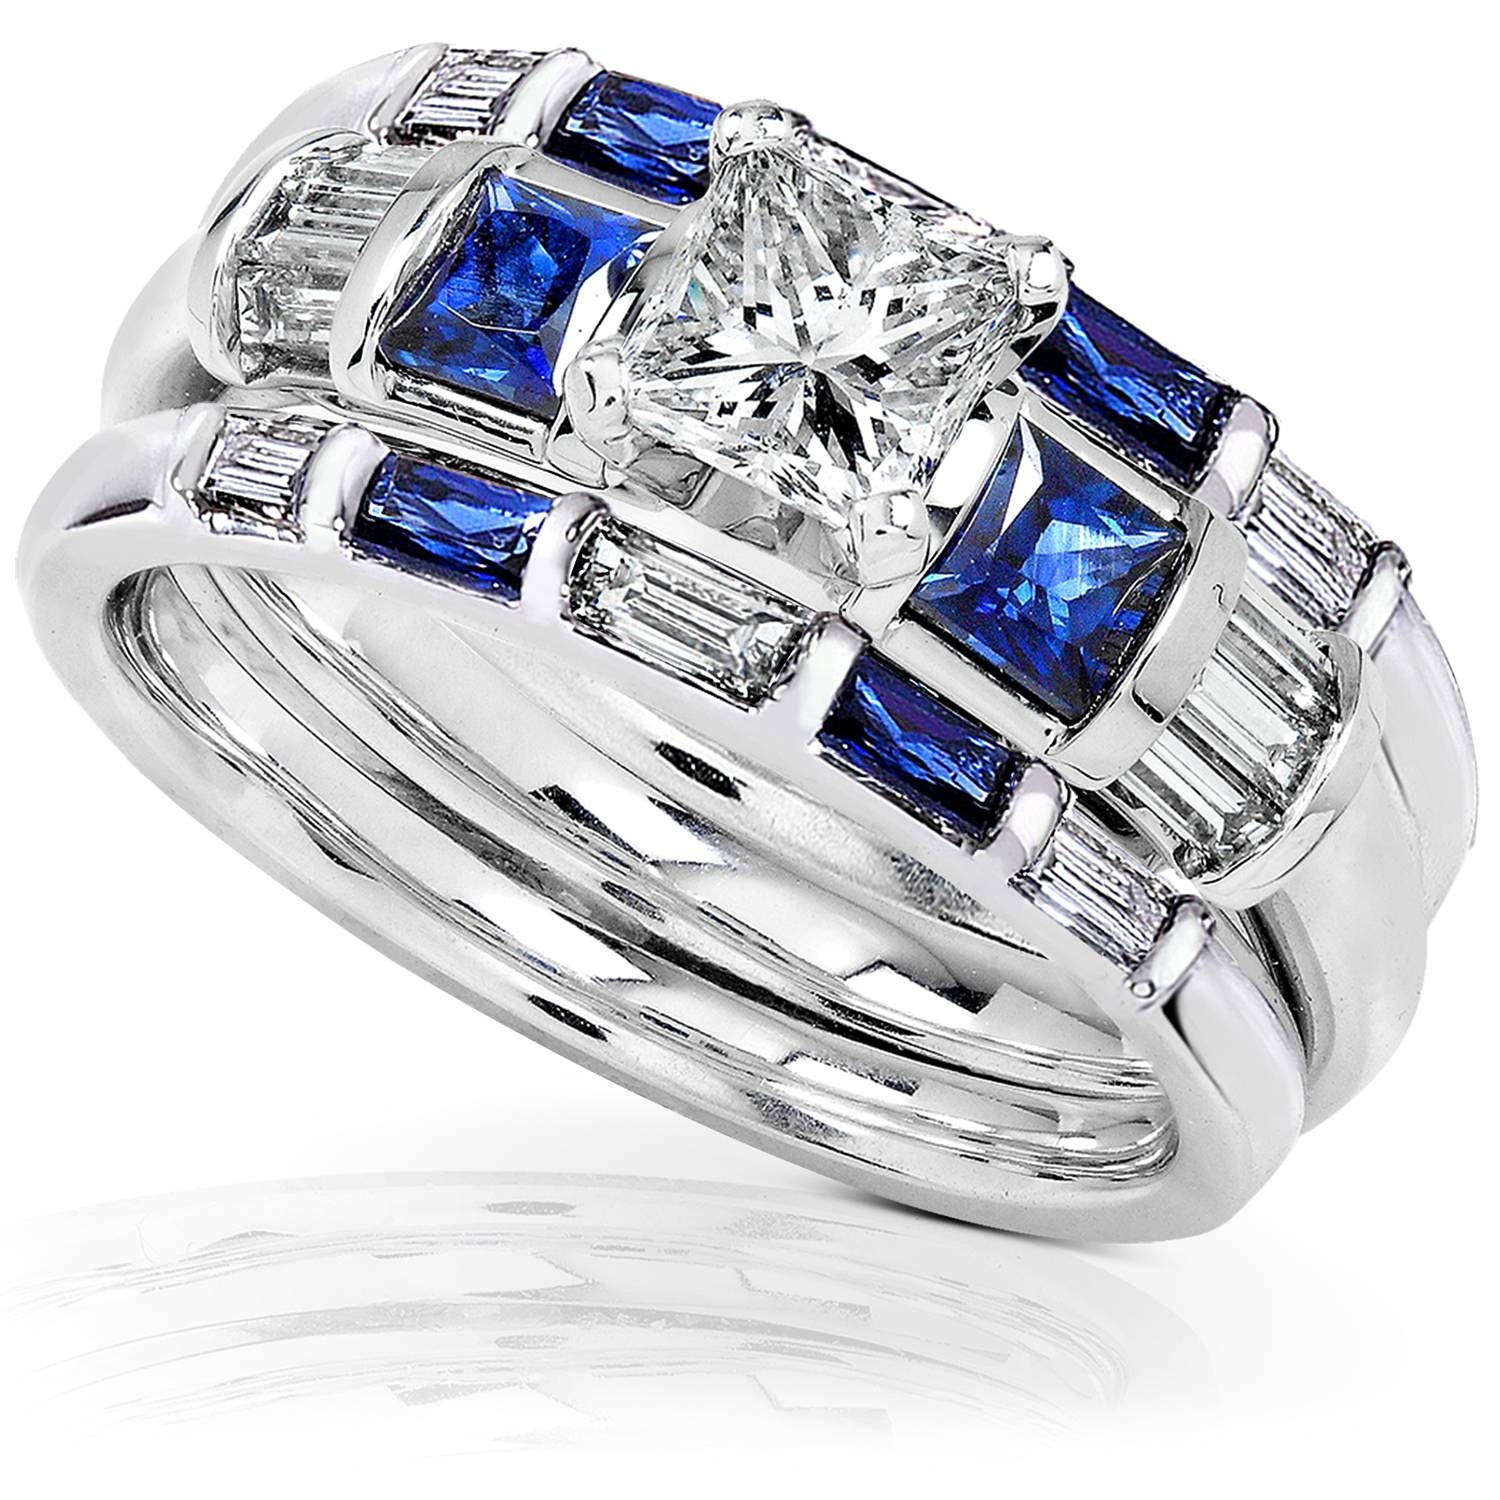 Blue Sapphire & Diamond Wedding Rings Set 1 1/2 Carat (Ctw) In 14K Throughout Blue Diamond Wedding Ring Sets (View 6 of 15)